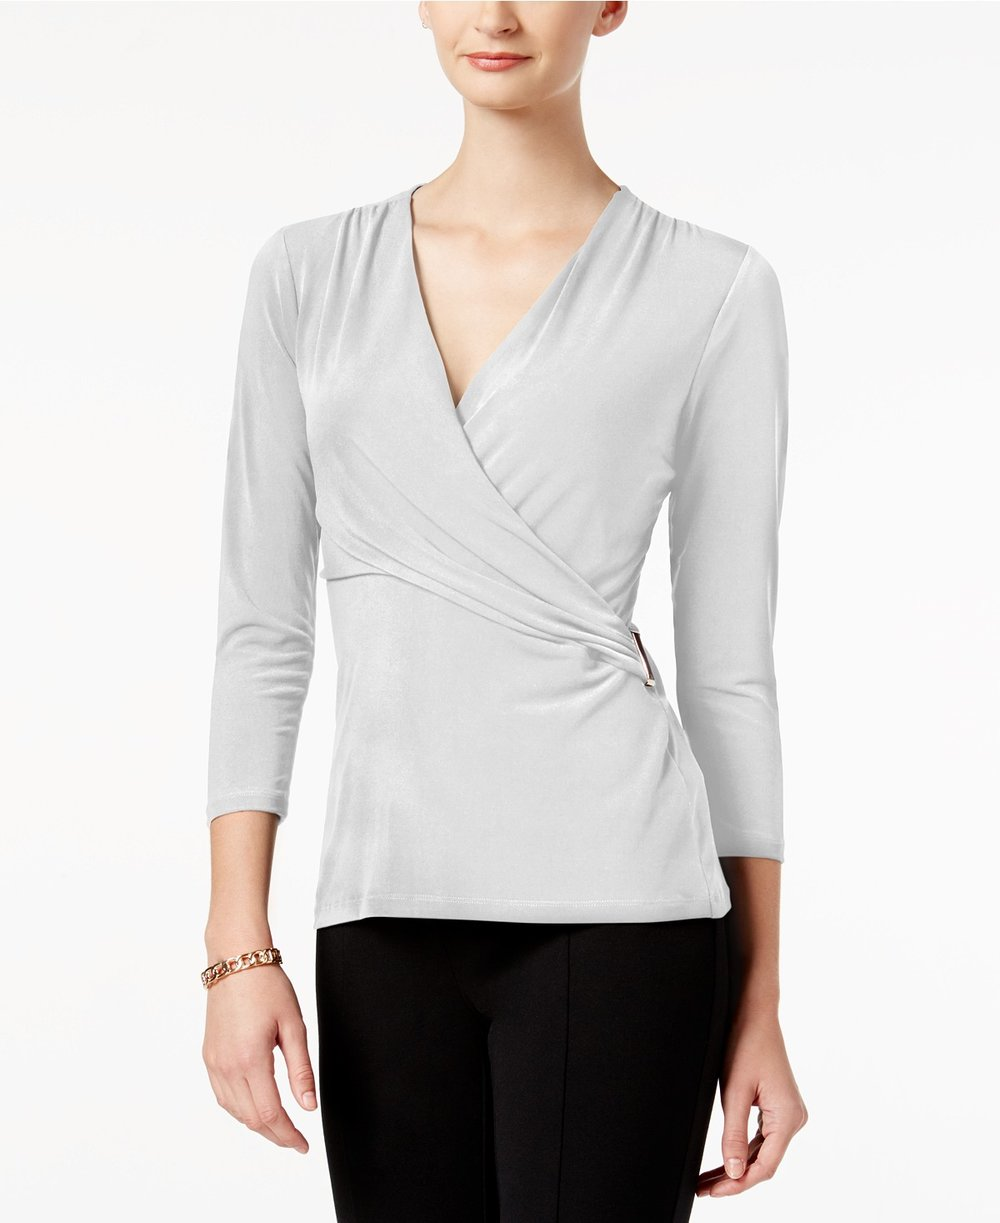 Charter Club  Petite Printed Faux-Wrap Top. Available in a zillion colors. Macy's. Was: $44. Now:$21.